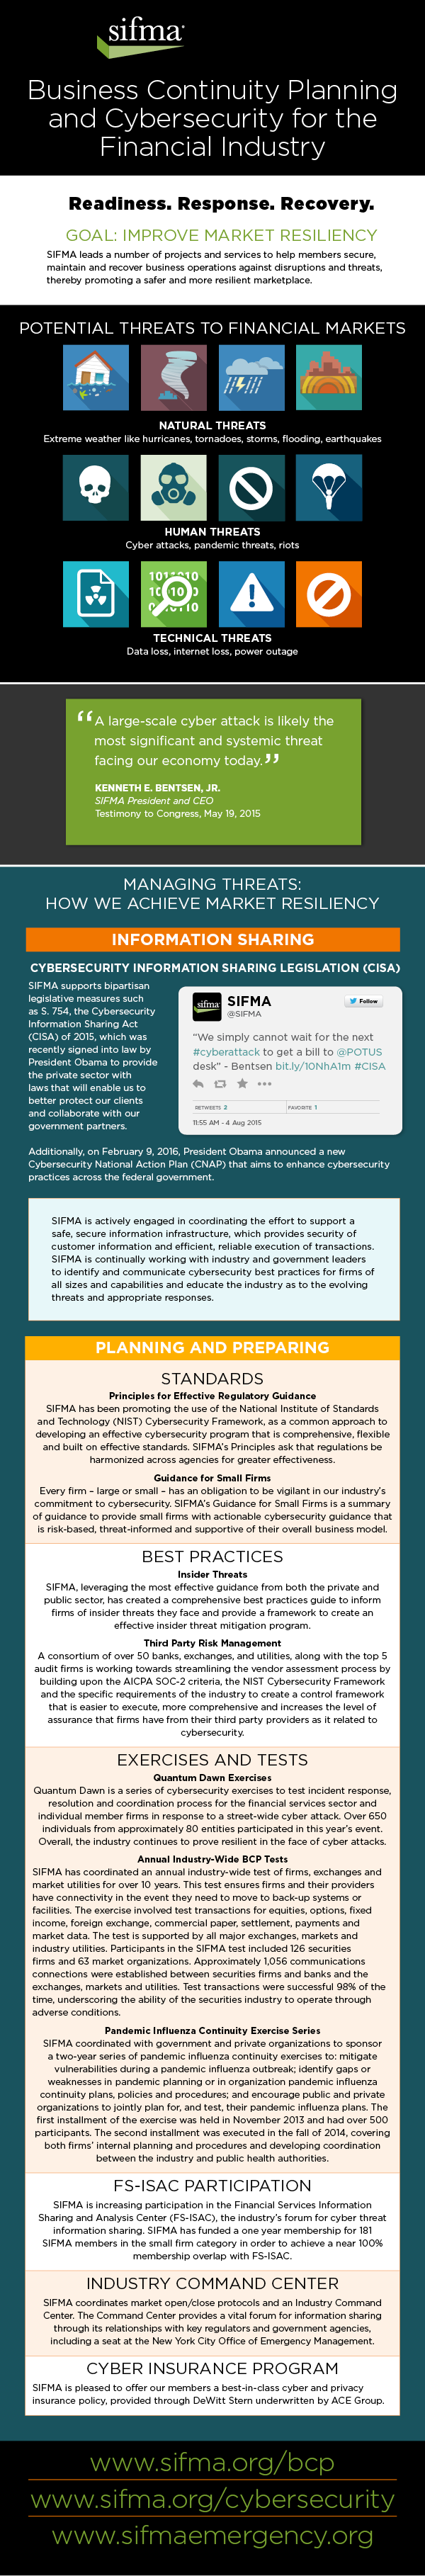 Infographic: Business Continuity Planning and Cybersecurity for the Financial Industry